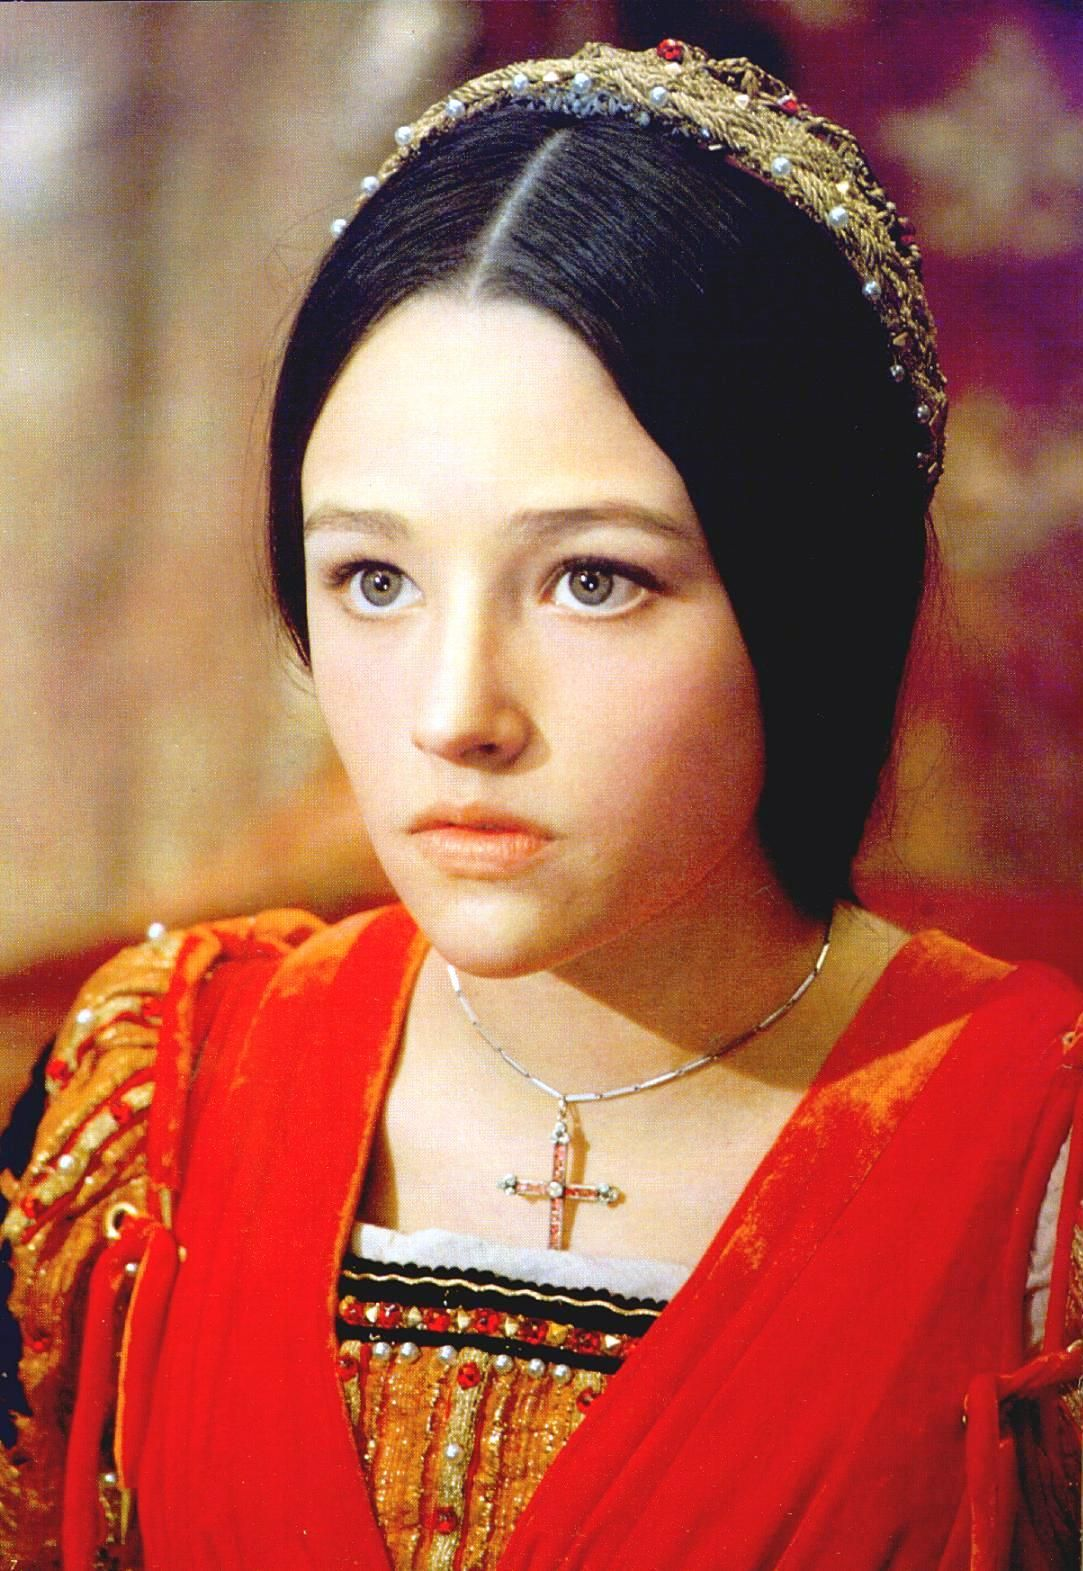 olivia hussey magnificatolivia hussey and leonard whiting, olivia hussey 2016, olivia hussey romeo and juliet, olivia hussey now, olivia hussey vk, olivia hussey and leonard whiting tumblr, olivia hussey wikipedia, olivia hussey twitter, olivia hussey magnificat, olivia hussey facebook, olivia hussey imdb, olivia hussey and leonard whiting married, olivia hussey now and then, olivia hussey recent photos, olivia hussey all the right noises, olivia hussey youtube, olivia hussey foto, olivia hussey korea, olivia hussey instagram, olivia hussey daughter